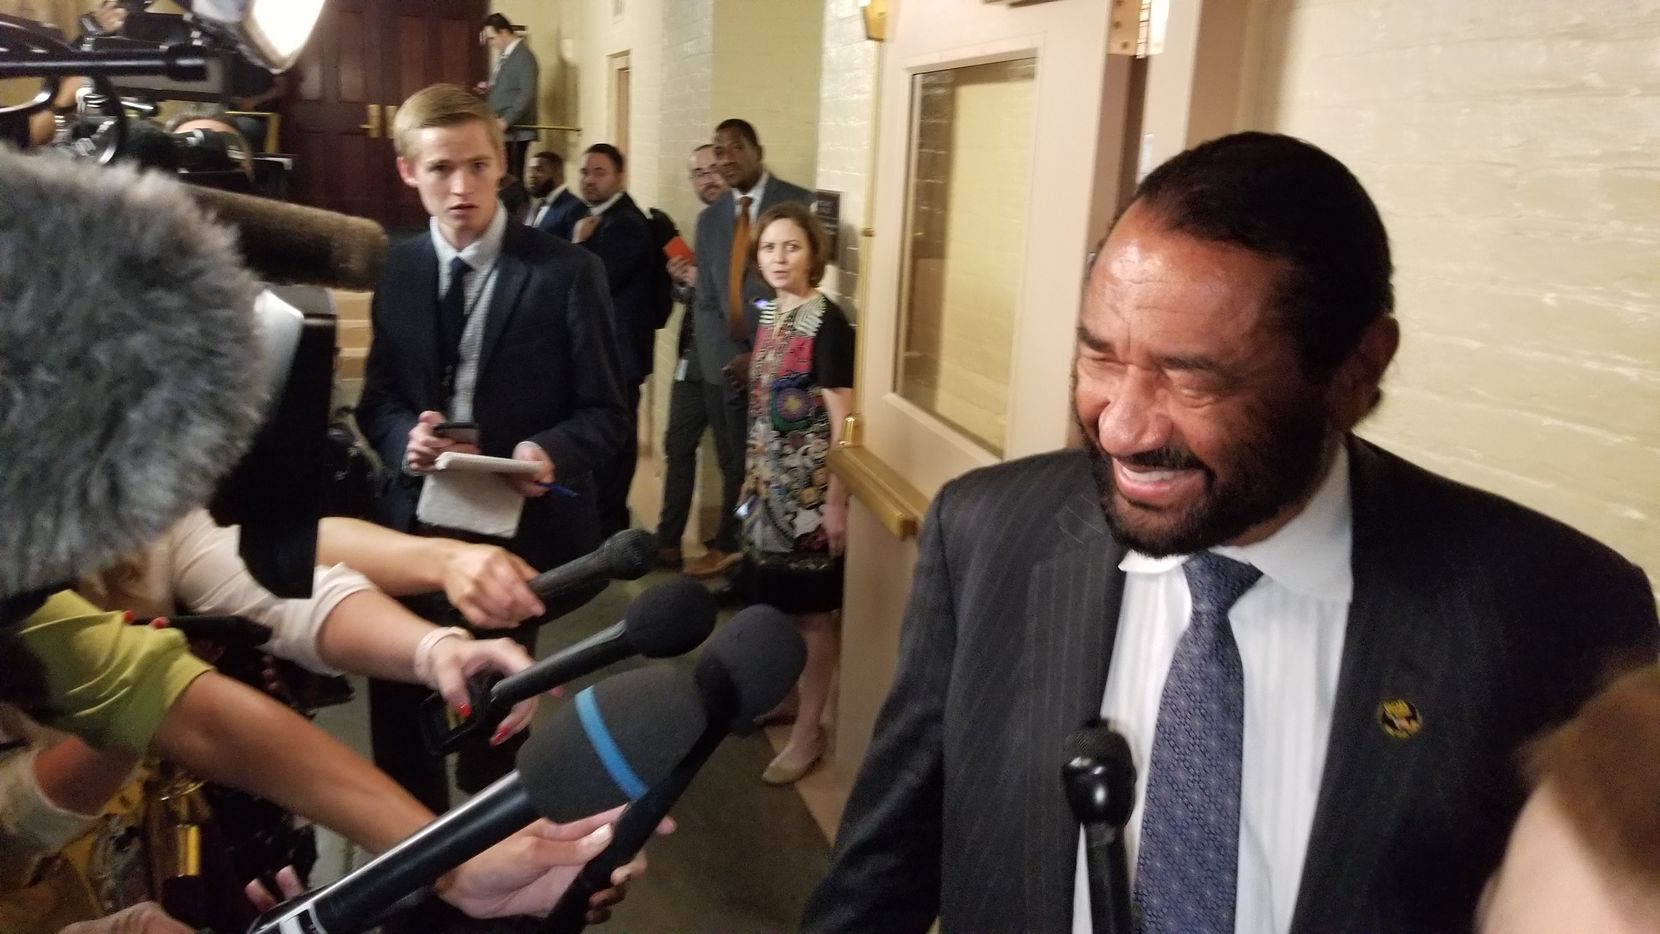 Rep. Al Green, a Houston Democrat who has demanded impeachment of Donald Trump since the president took office, was pleased that Speaker Nancy Pelosi had ordered an inquiry to move forward. He spoke with reporters at the Capitol on Sept. 24, 2019, after her announcement.